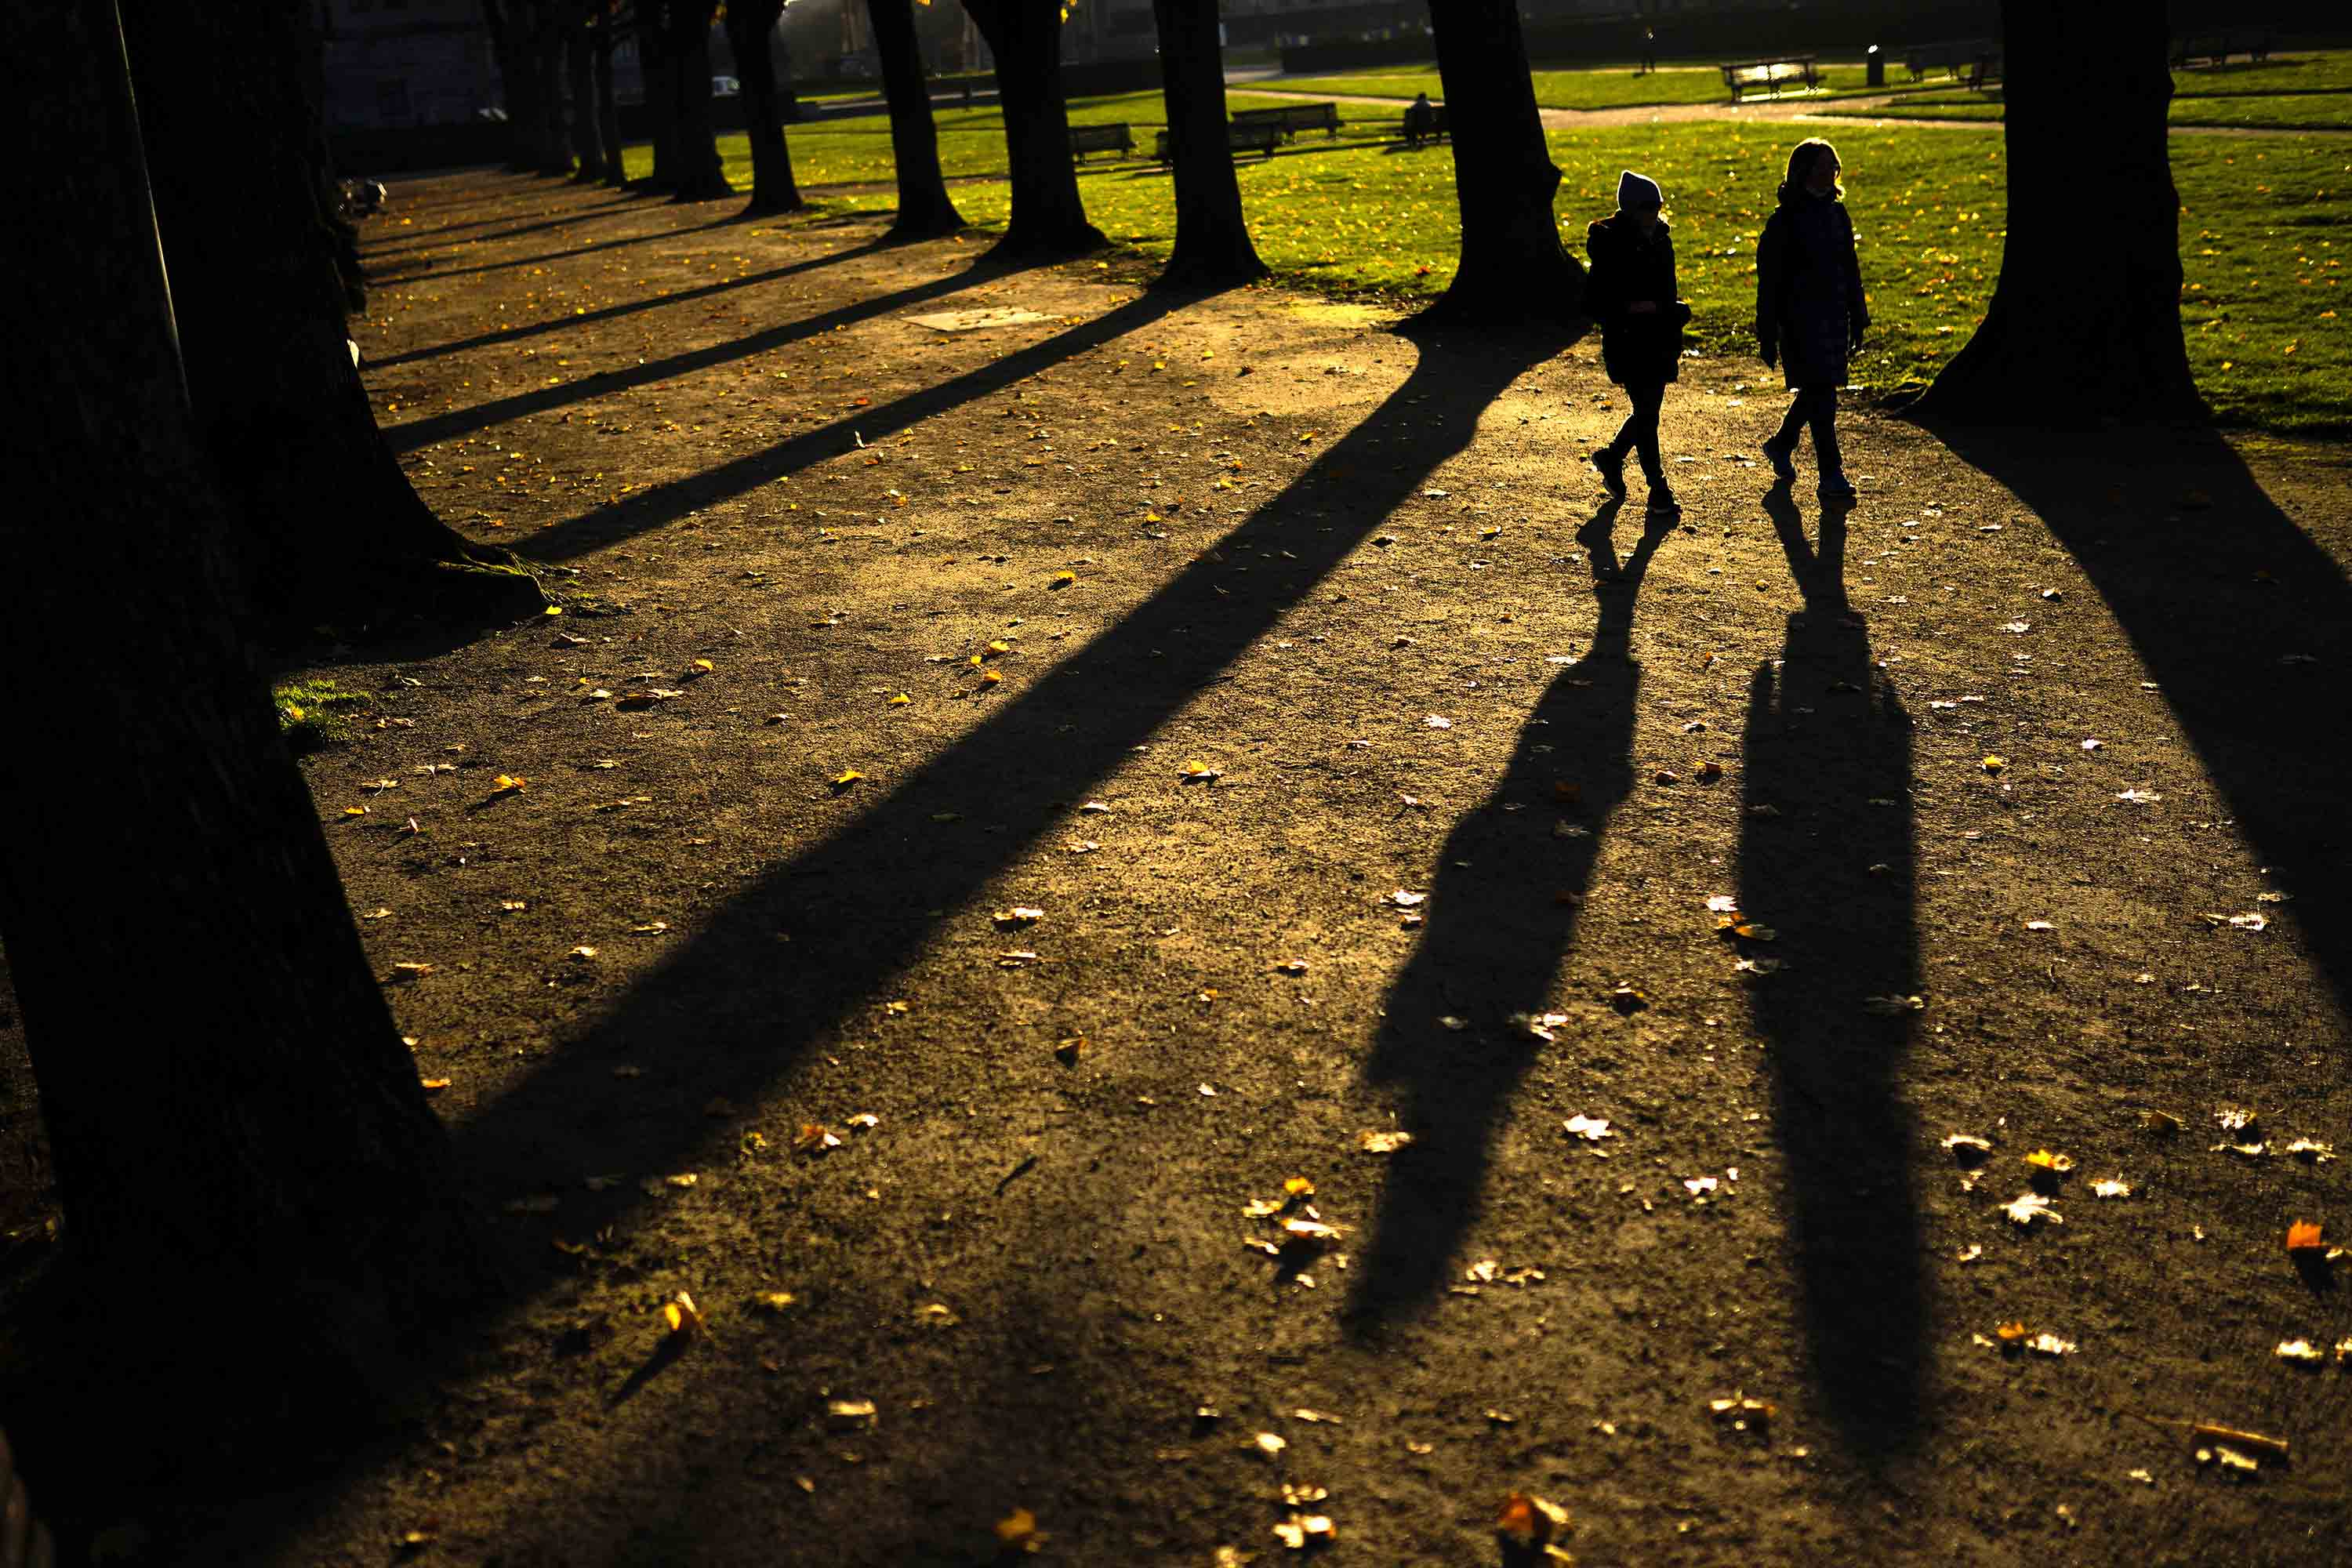 People walk in Cinquantenaire park in Brussels, Belgium, on November 20.